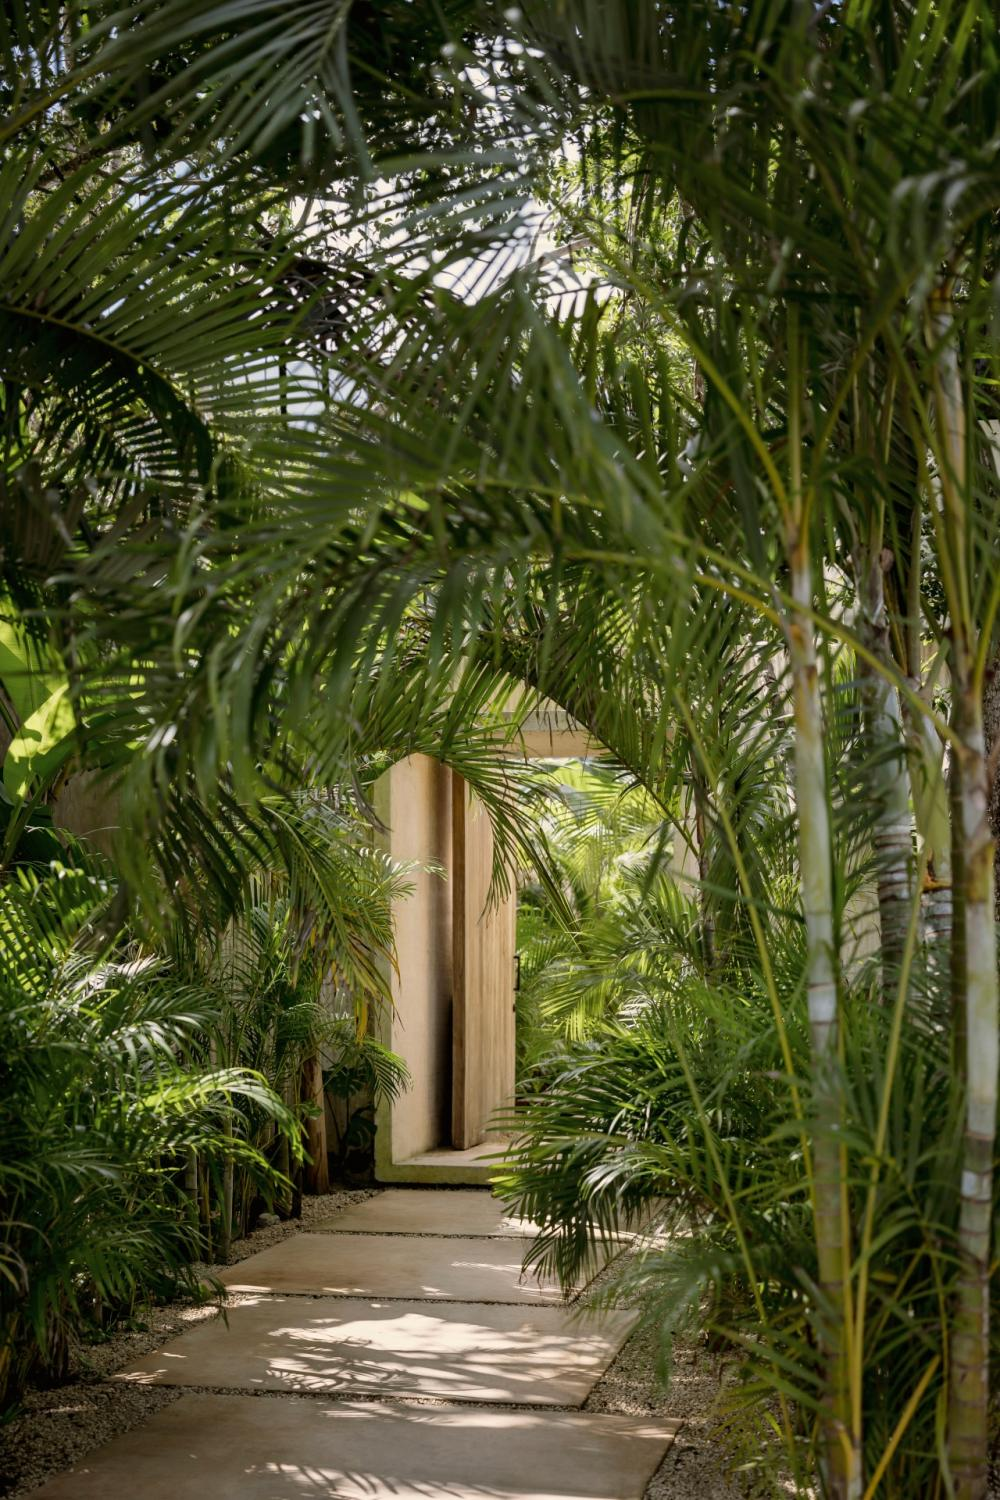 House tour: a peaceful, tropical holiday home in the trendy Mexican beach town of Tulum-2.jpg